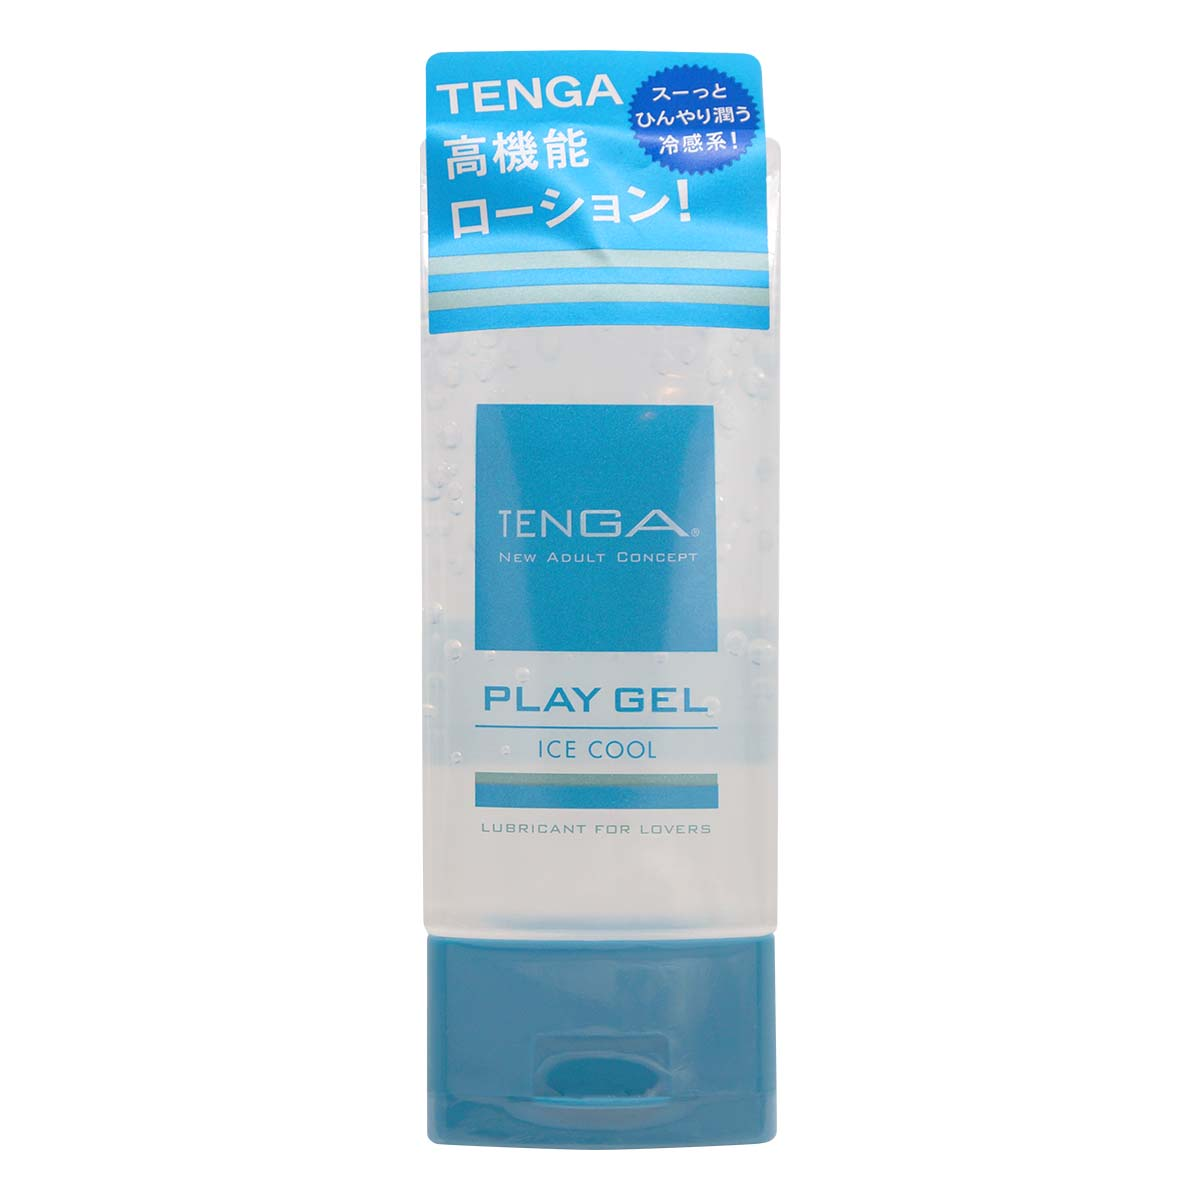 TENGA PLAY GEL ICE COOL 160ml Water-based Lubricant